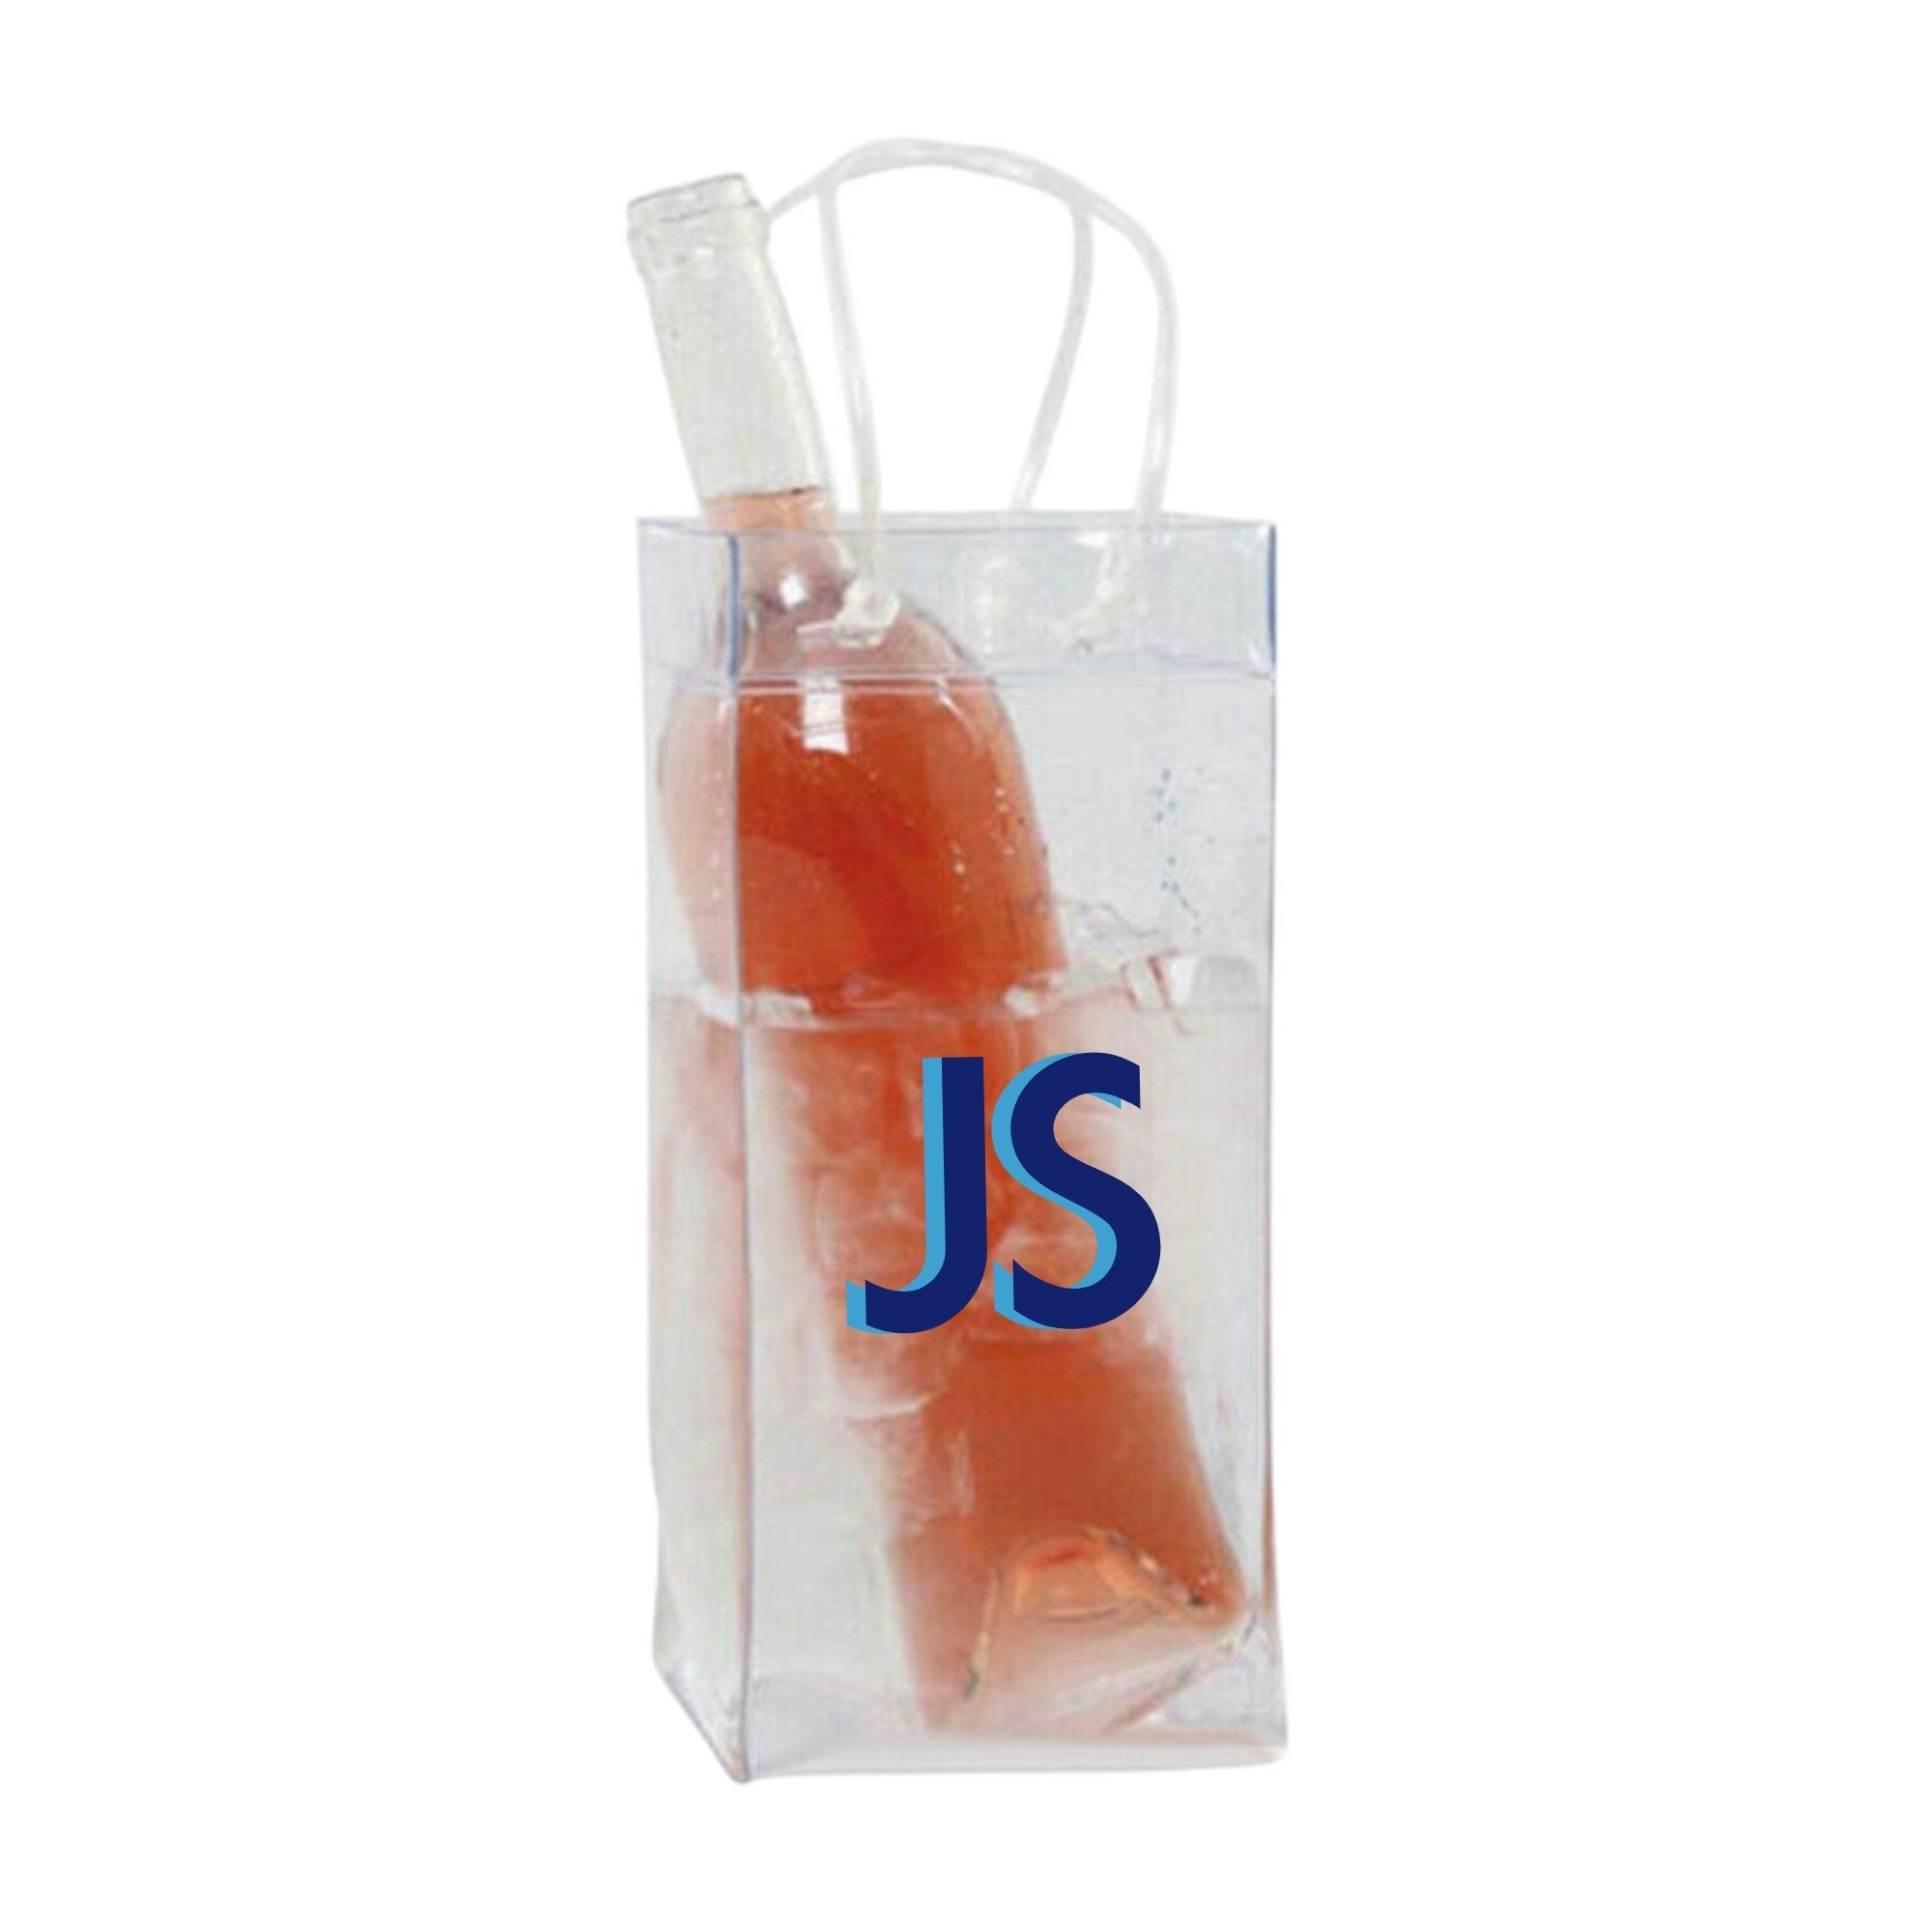 Monogram Wine Bag